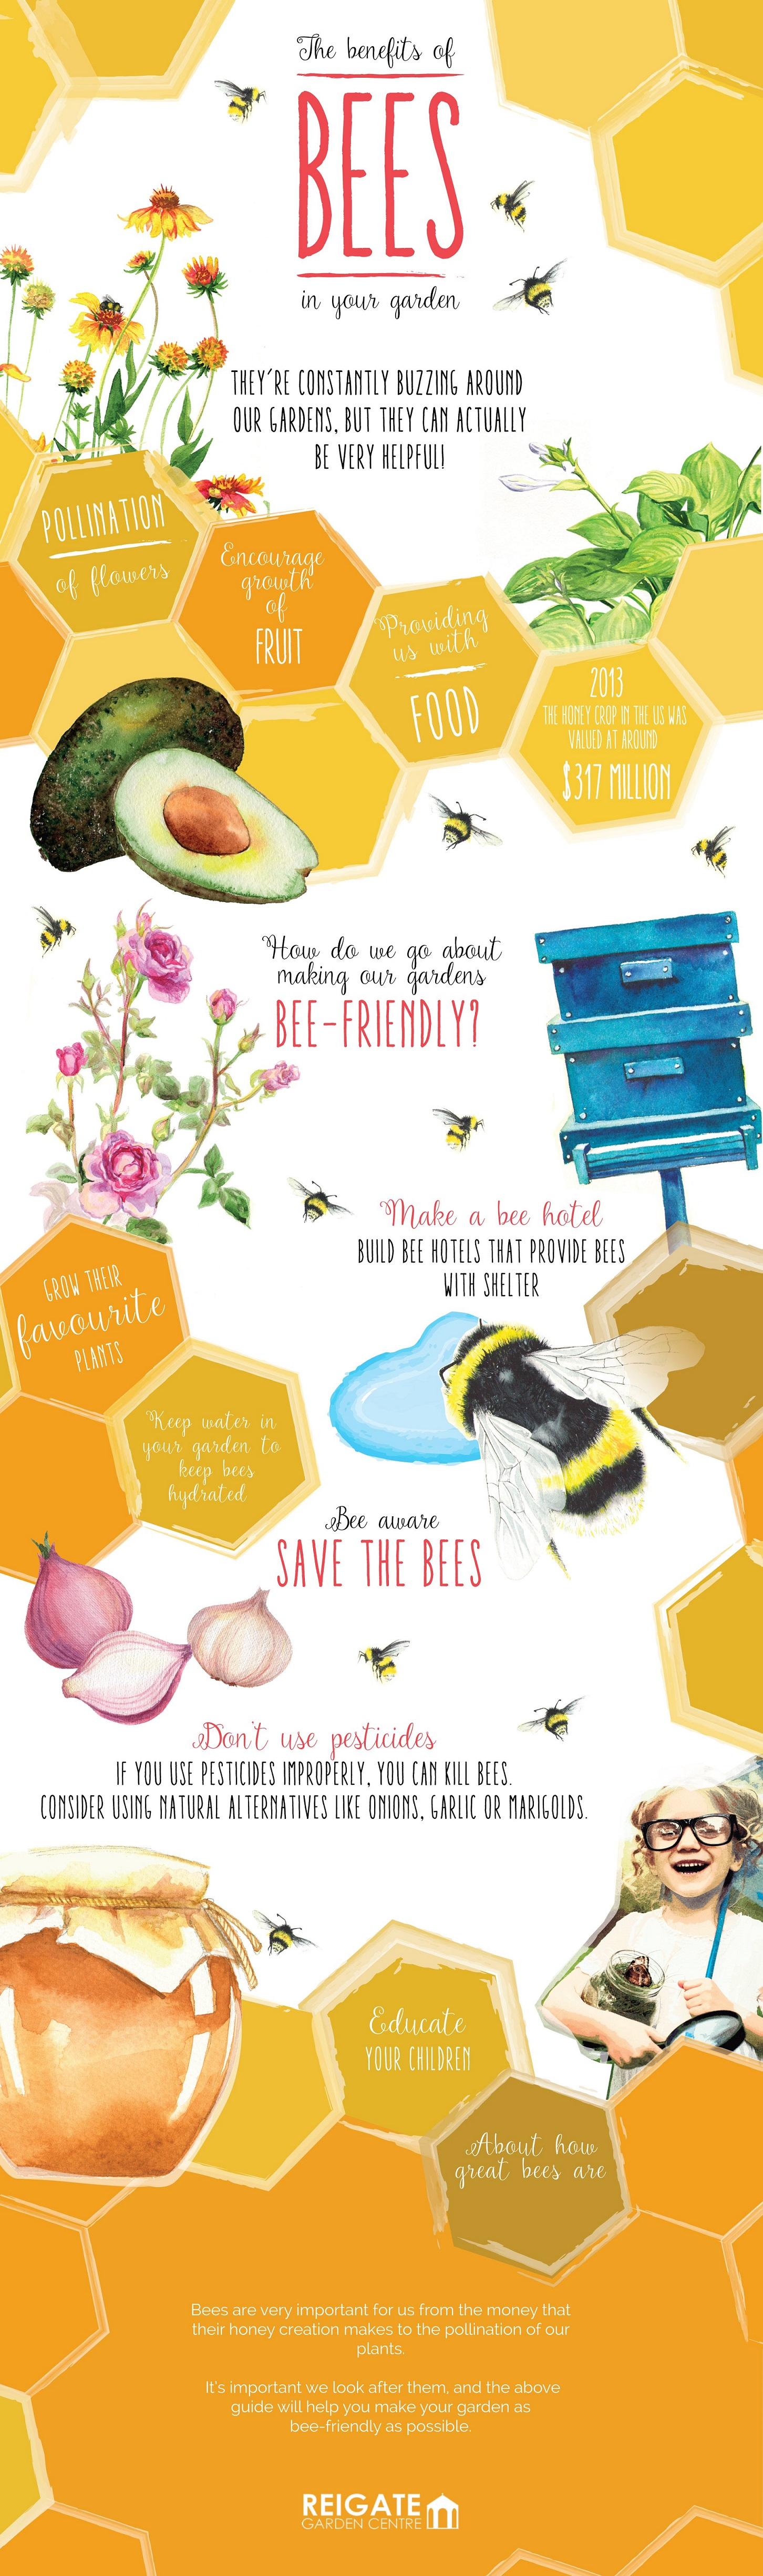 benefit of bees in your garden infographic